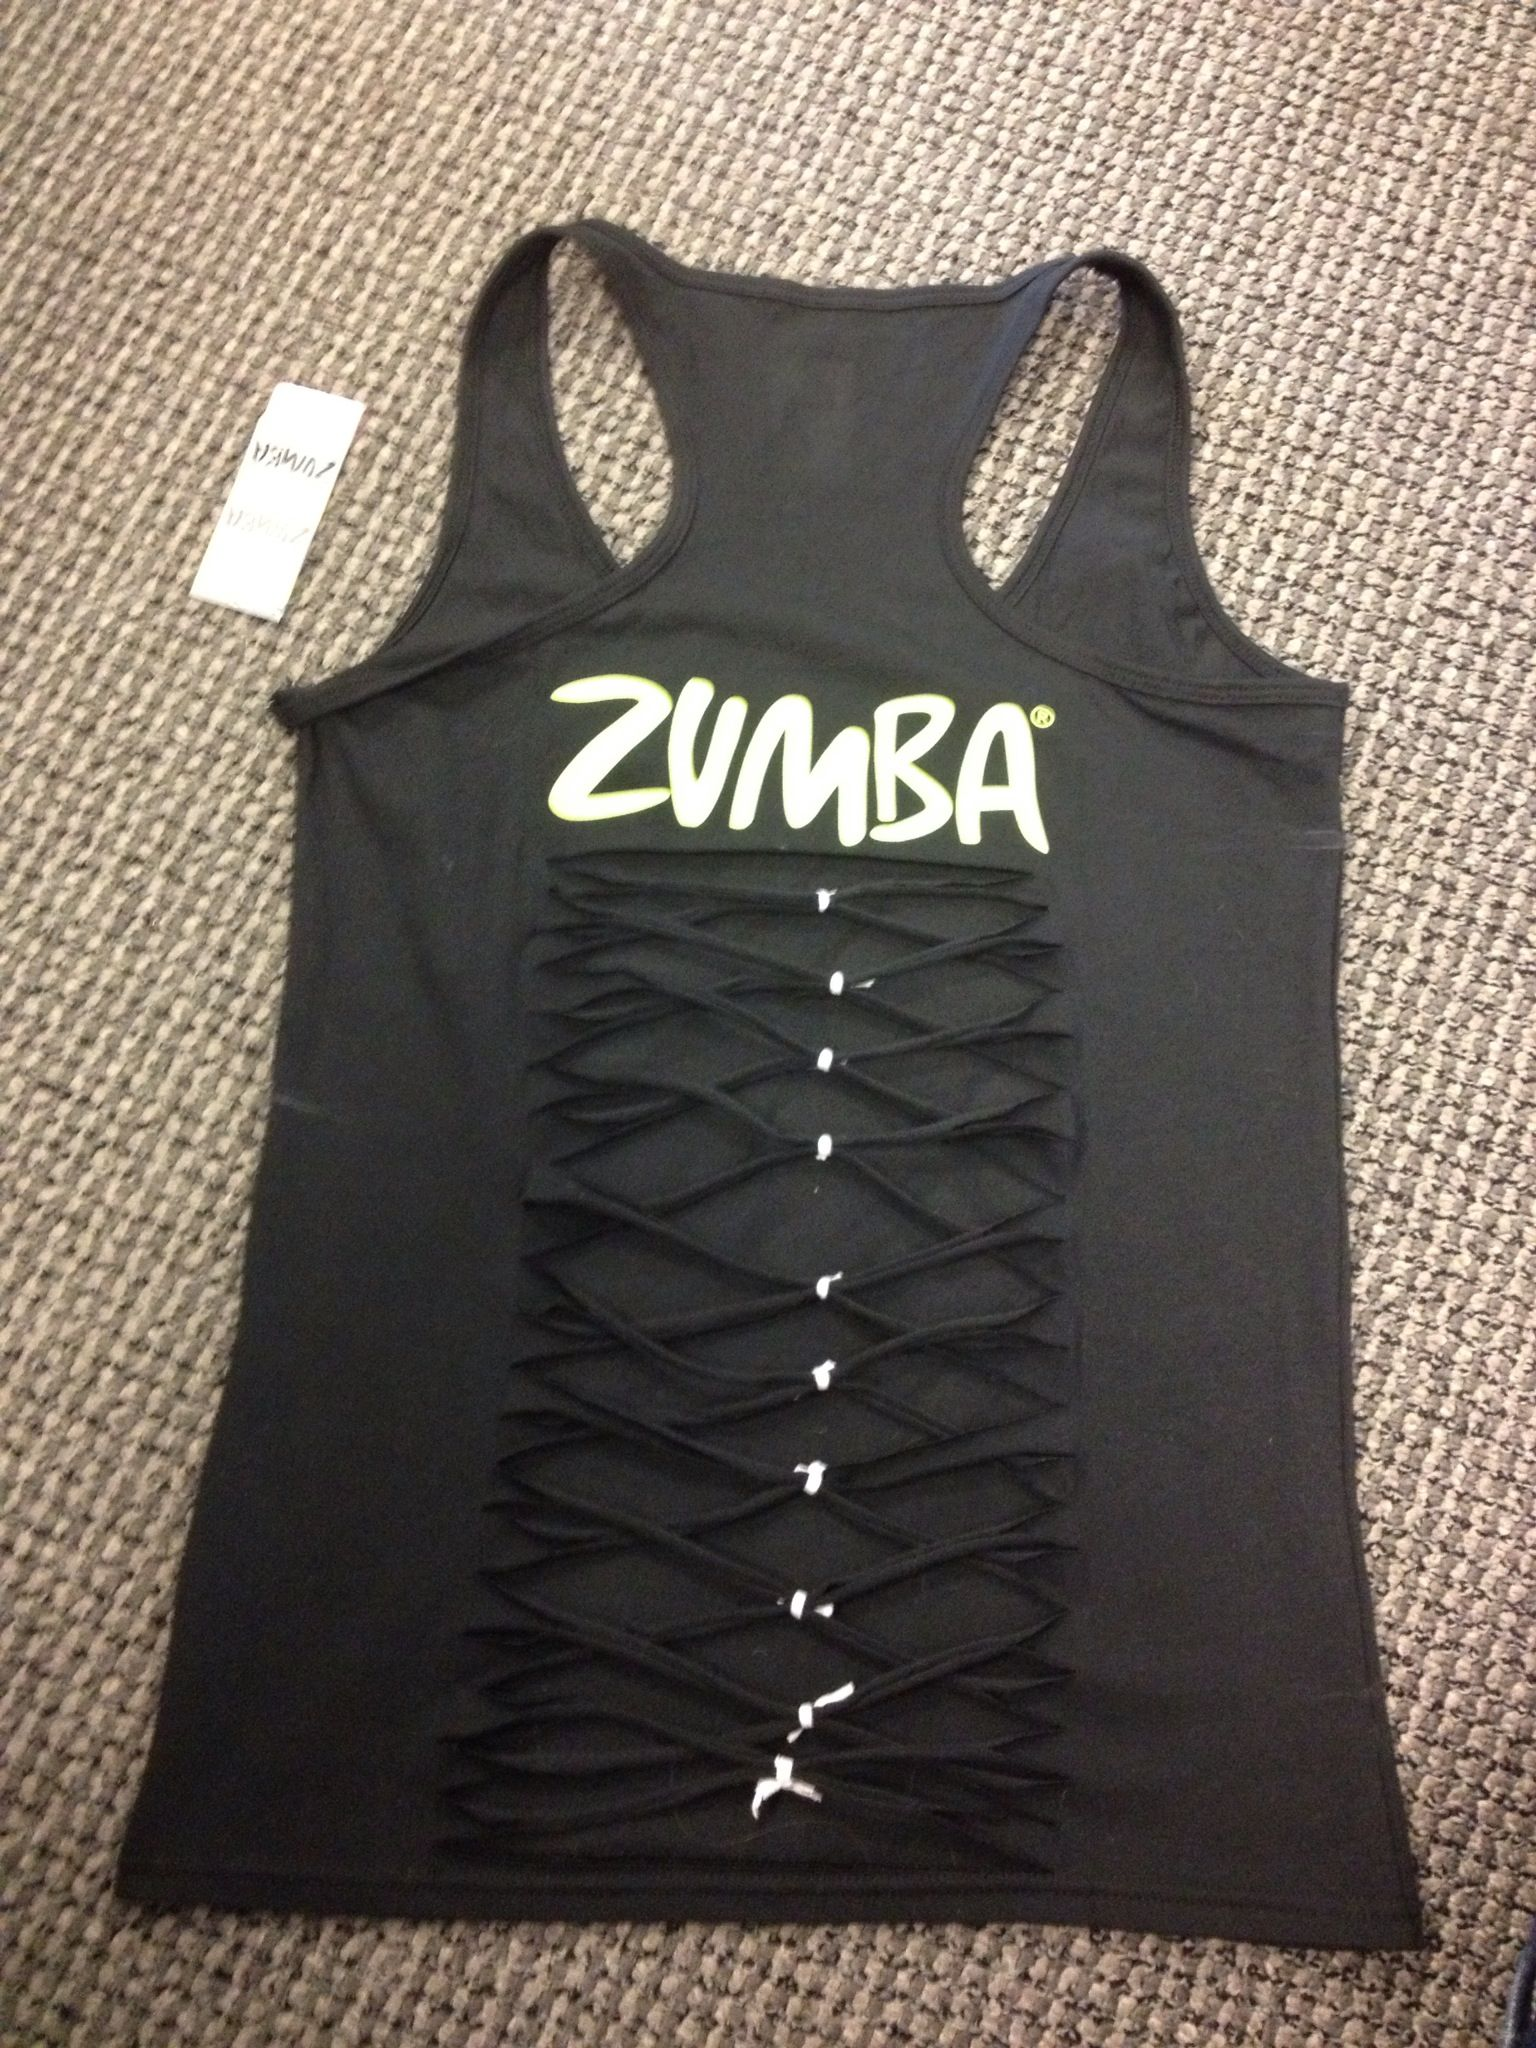 T-shirt design for zumba - Zumba Tank I Totally Want One Of These T Shirt